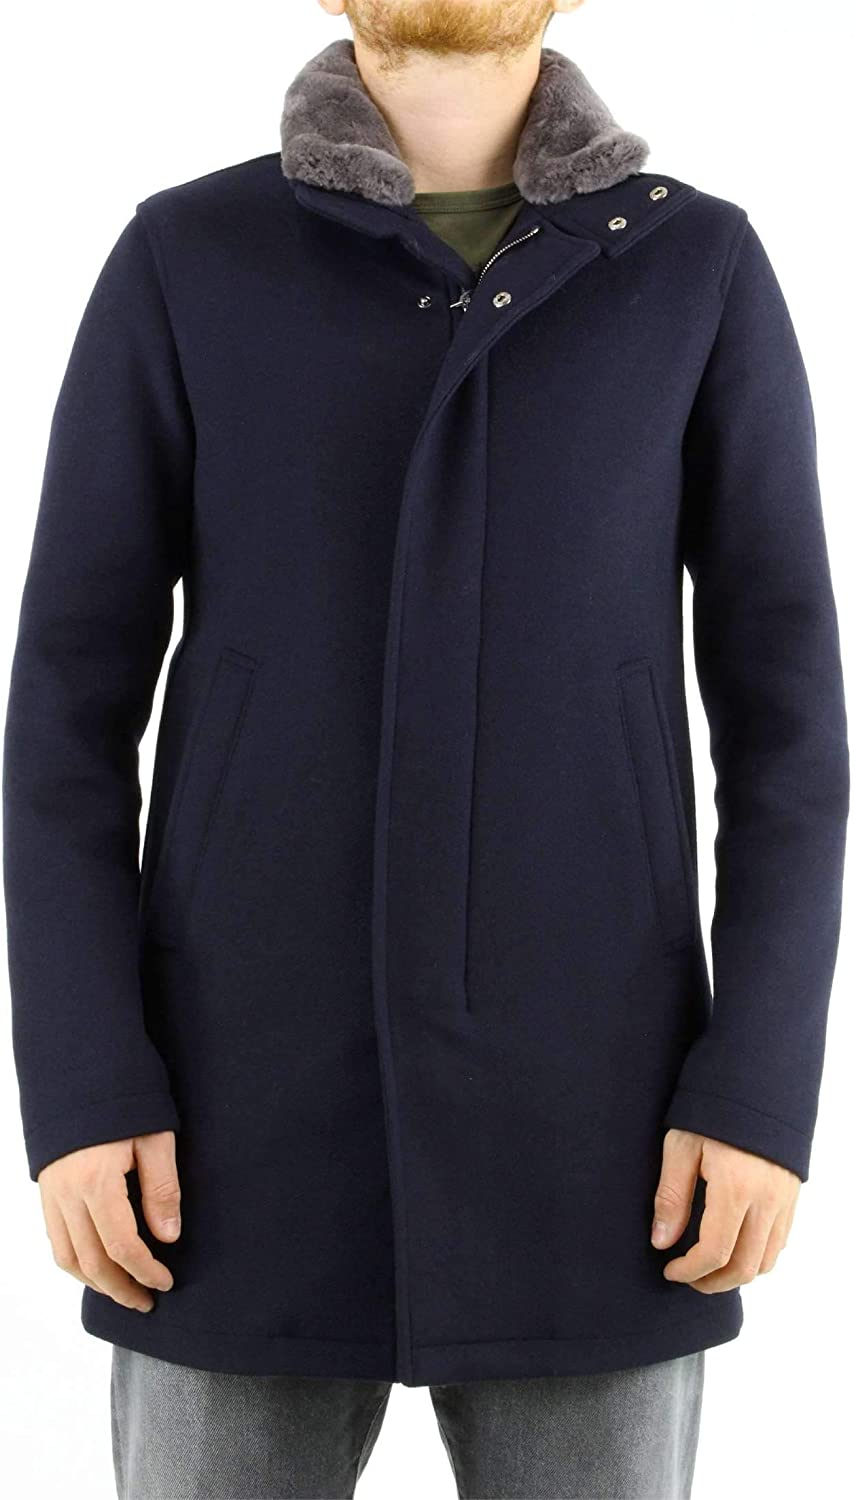 Herno Blue Wool Coat with Fur Collar, Mens.